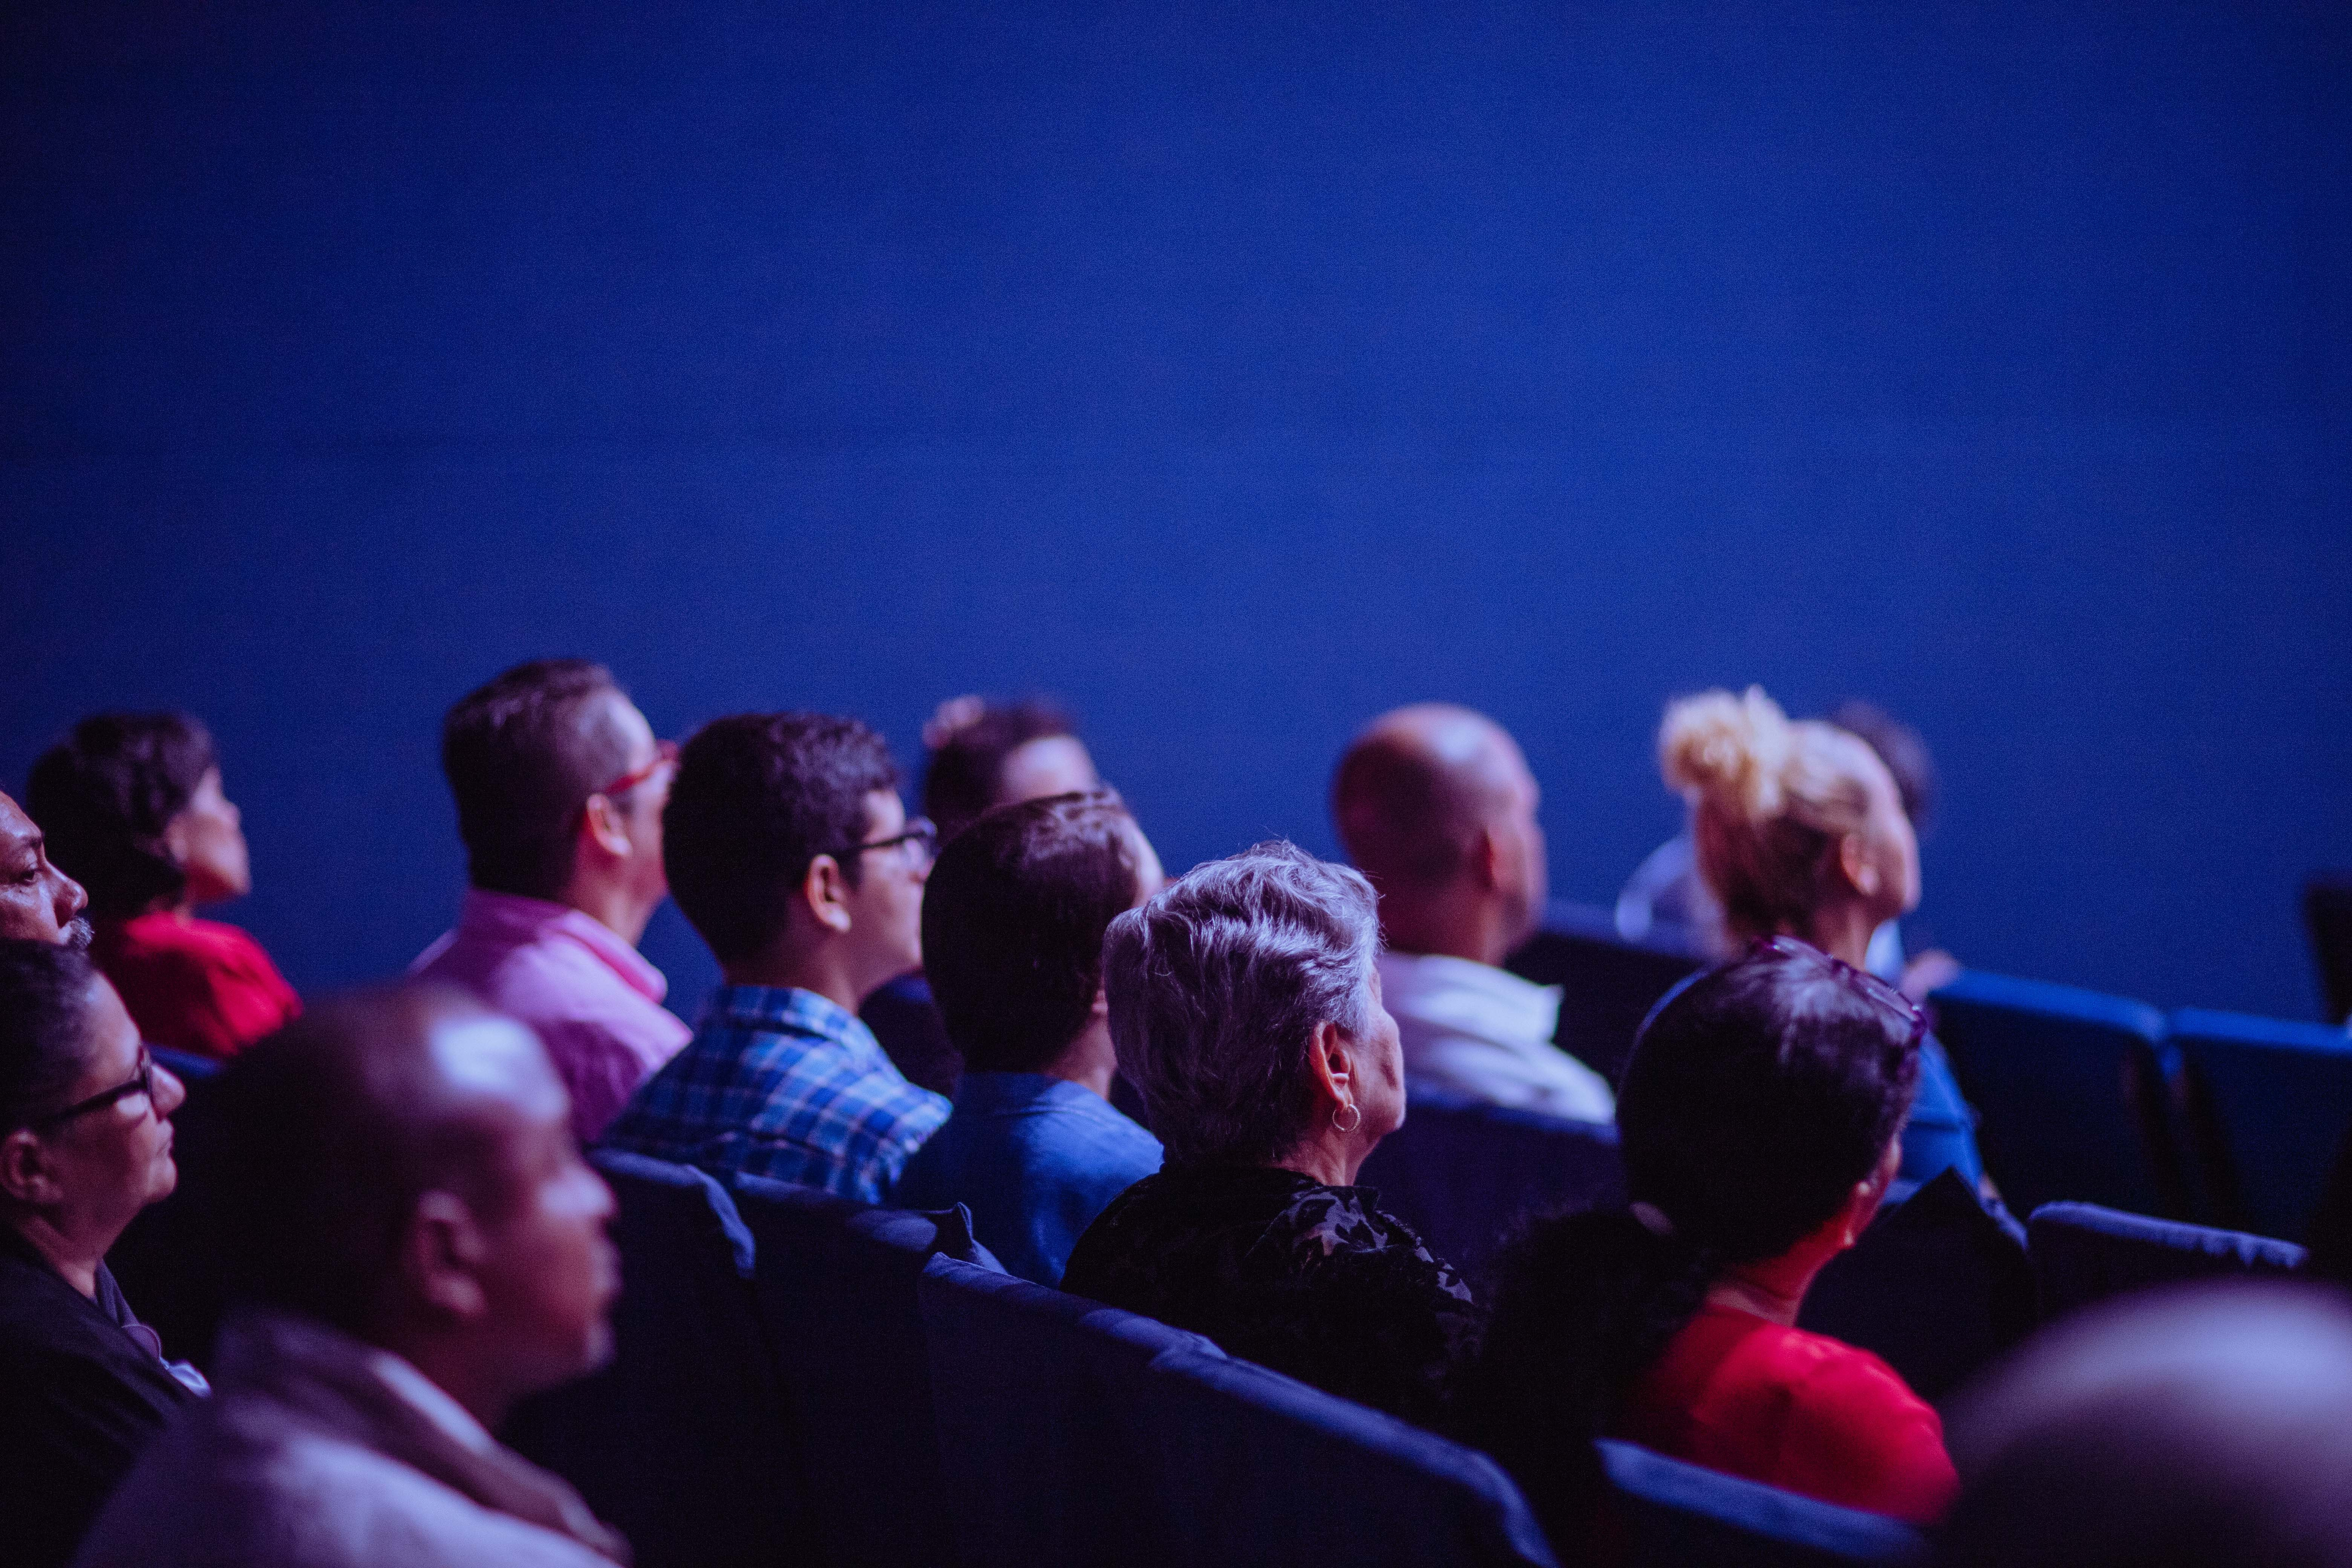 in-person audience watching a hybrid event on stage